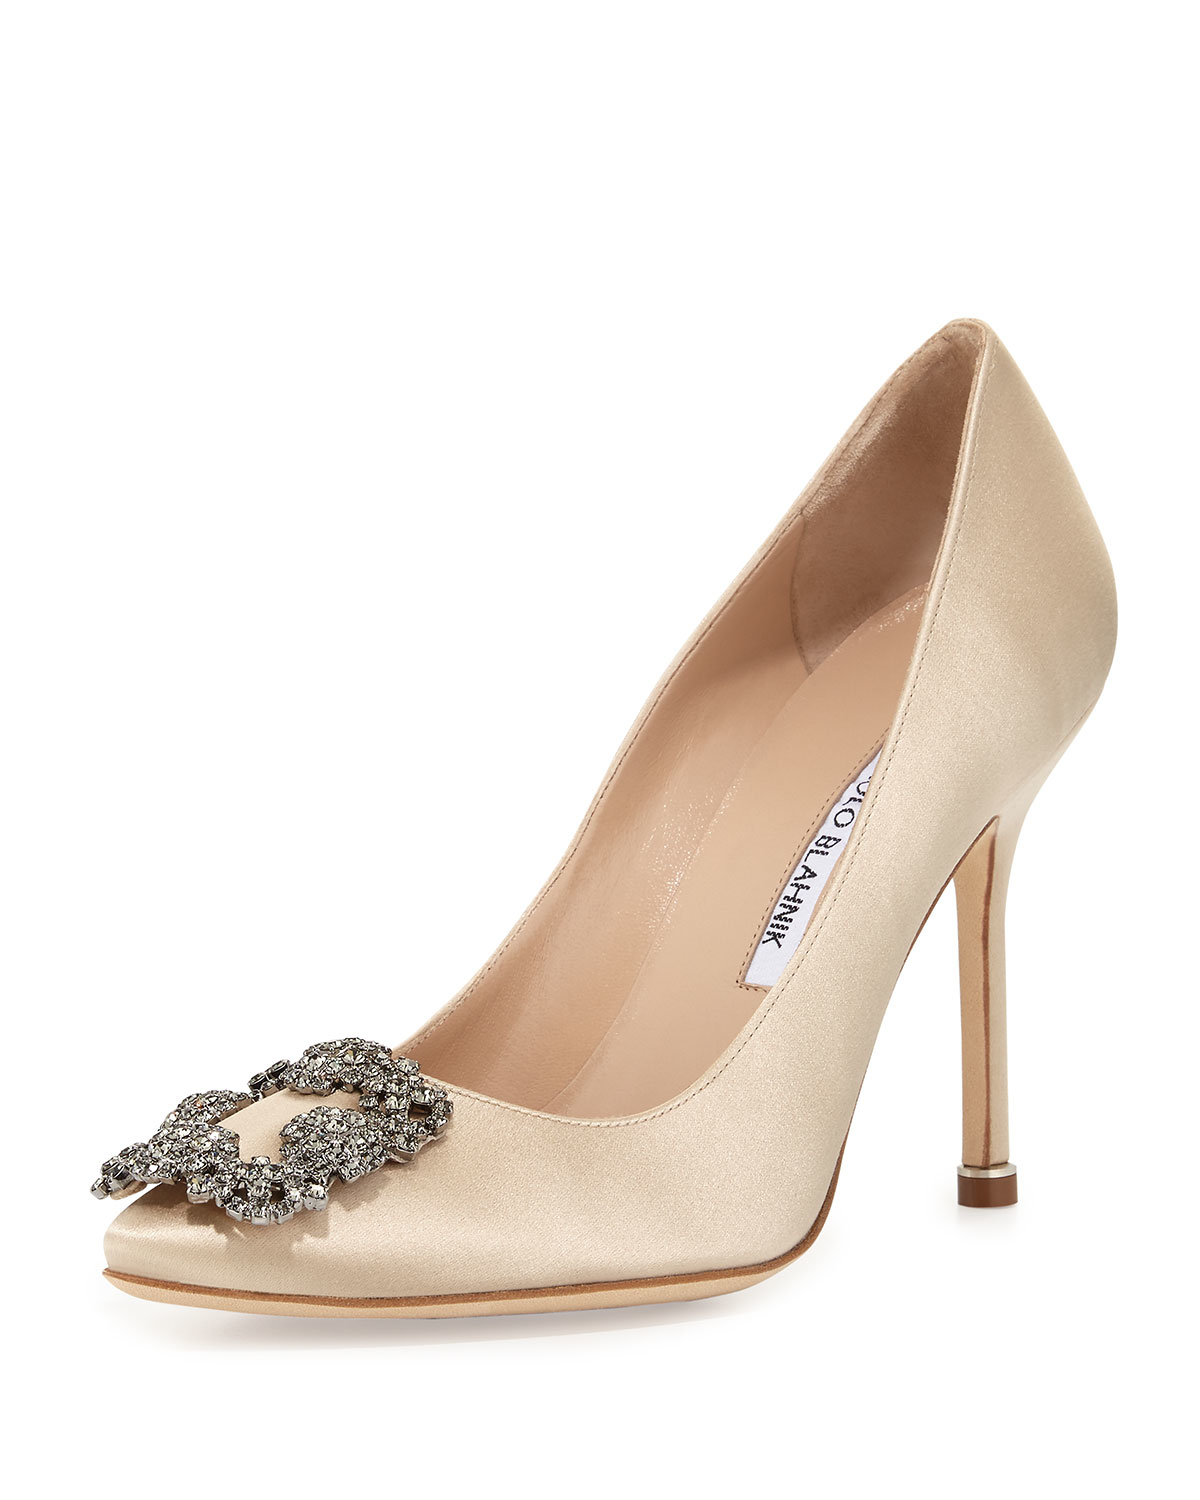 Manolo blahnik hangisi crystal buckle satin 105mm pump in for Who is manolo blahnik